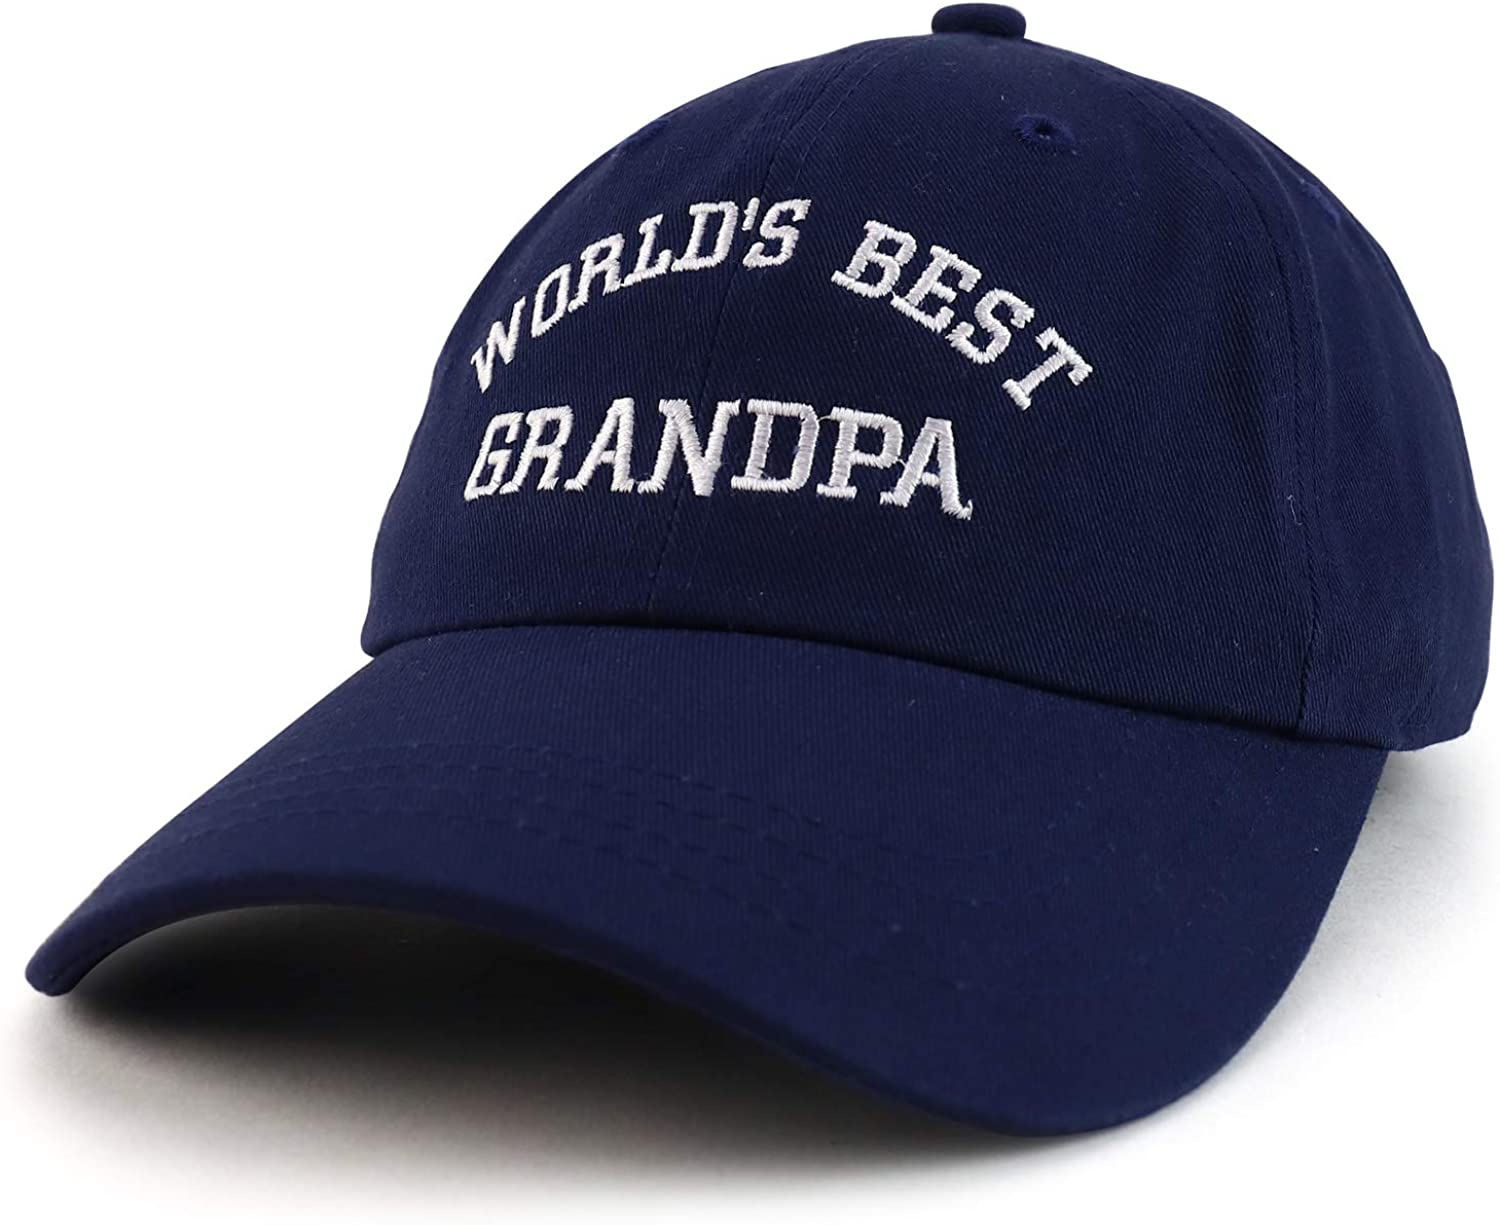 Trendy Apparel Shop World's Best Grandpa Embroidered Low Profile Soft Cotton Dad Hat Cap